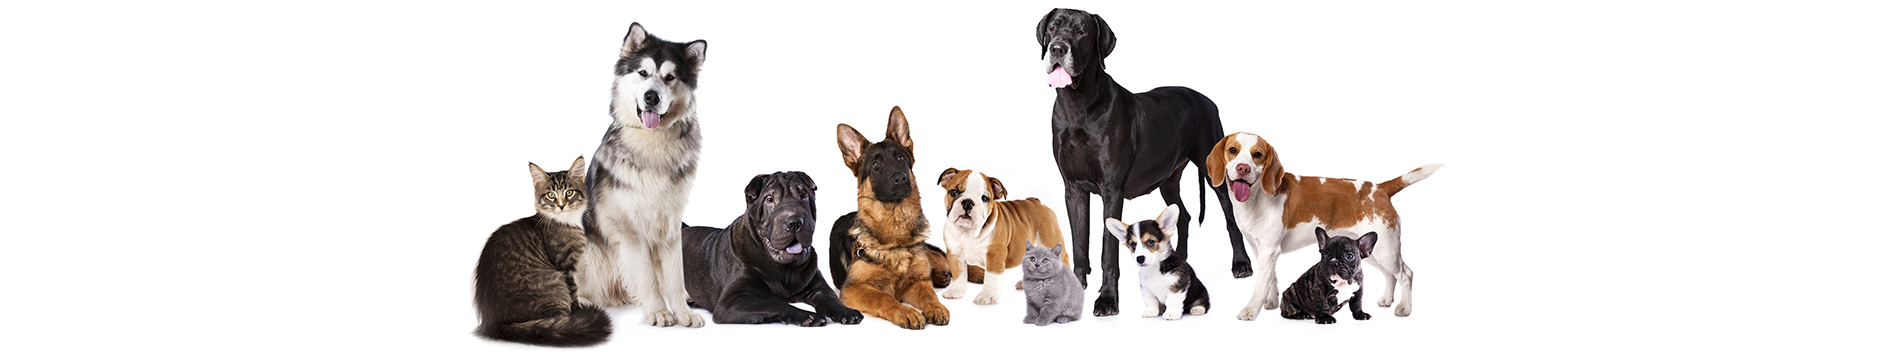 Pet grooming services pet love mobile pet grooming grooming services solutioingenieria Image collections